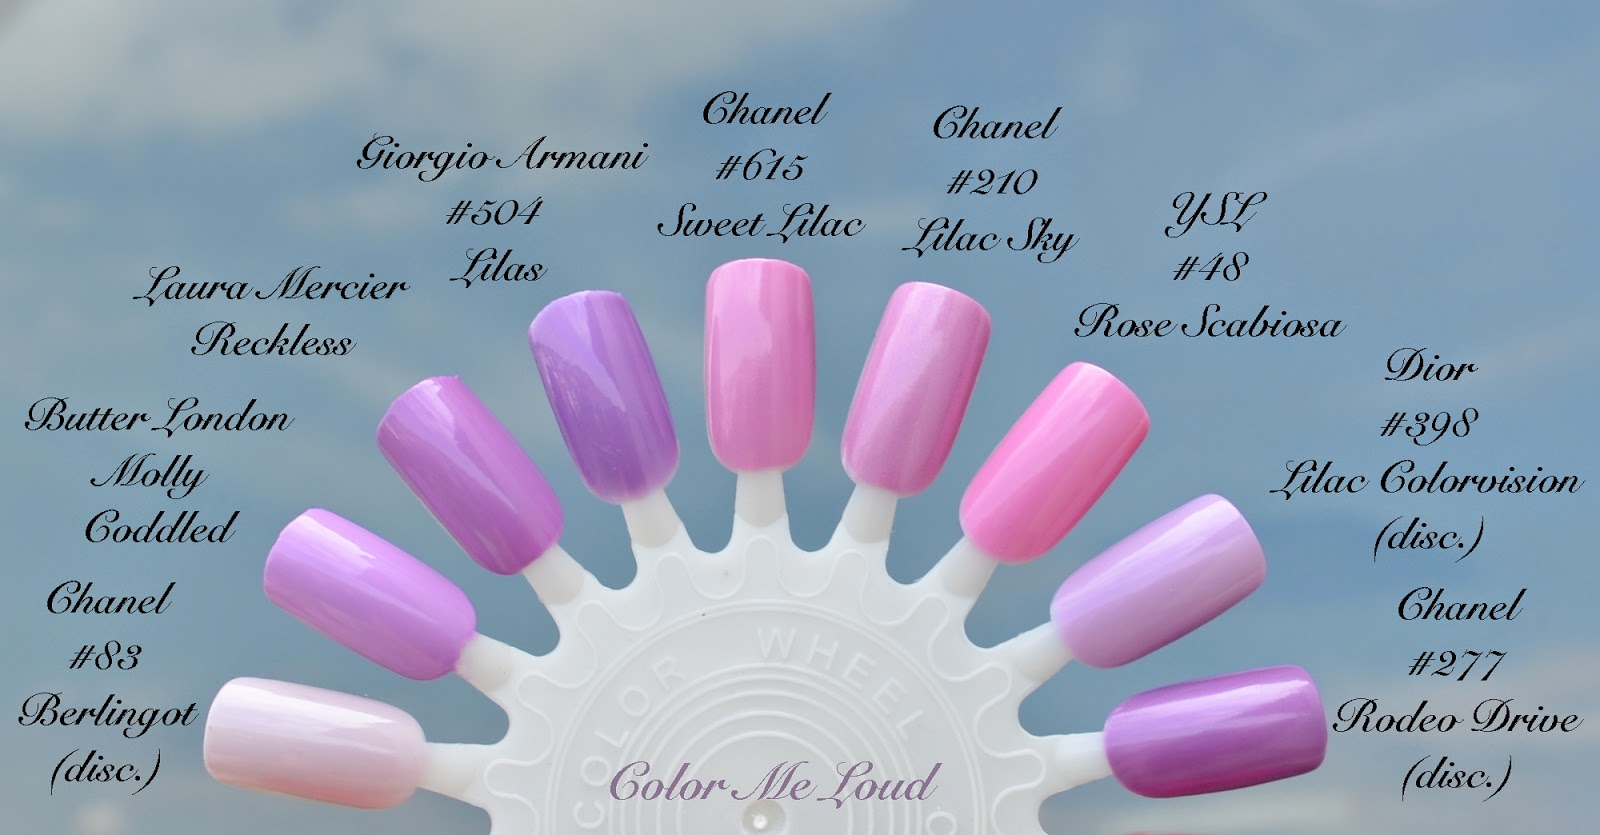 Chanel Le Vernis 615 Sweet Lilac 619 Pink Tonic 621